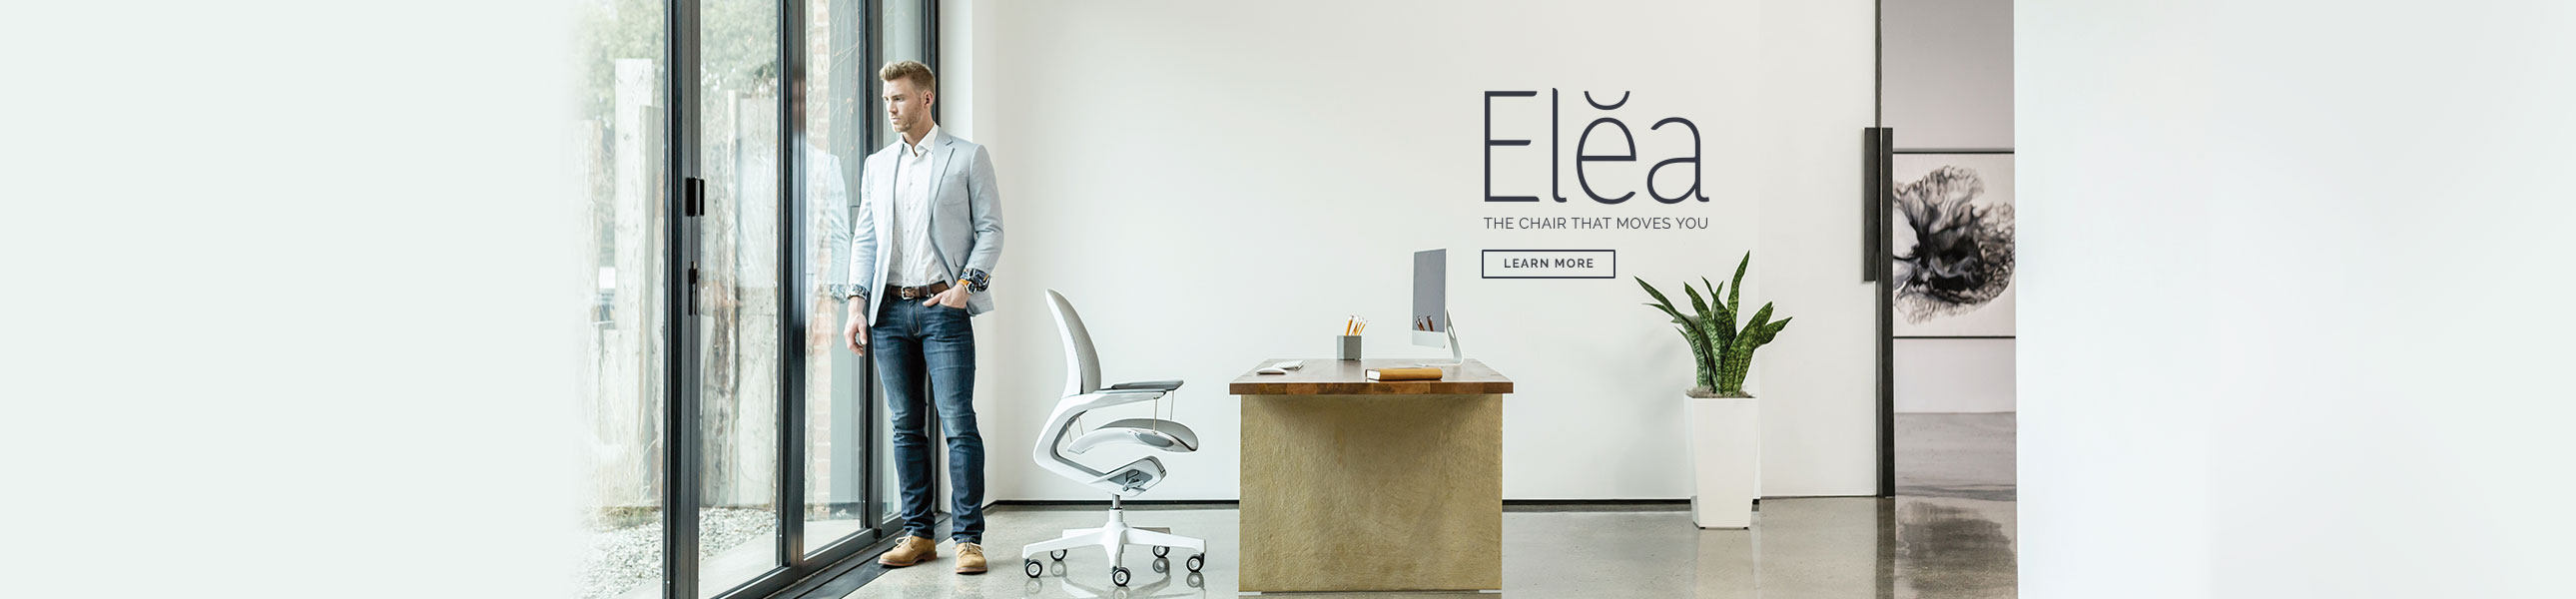 Elea - The Chair That Moves You